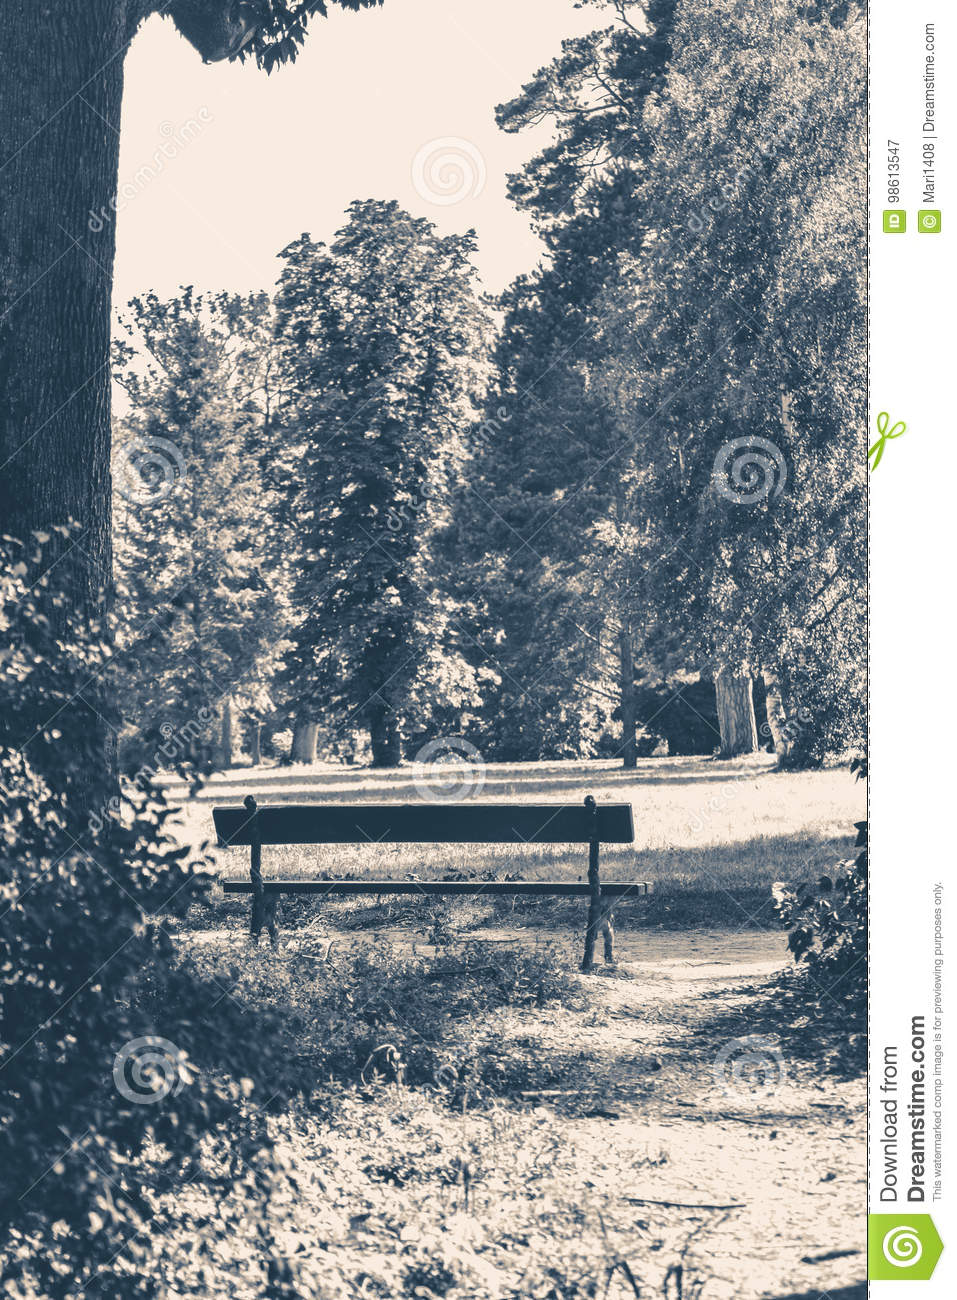 Old Vintage Photo Park Bench Sunny Day Summer Stock Image